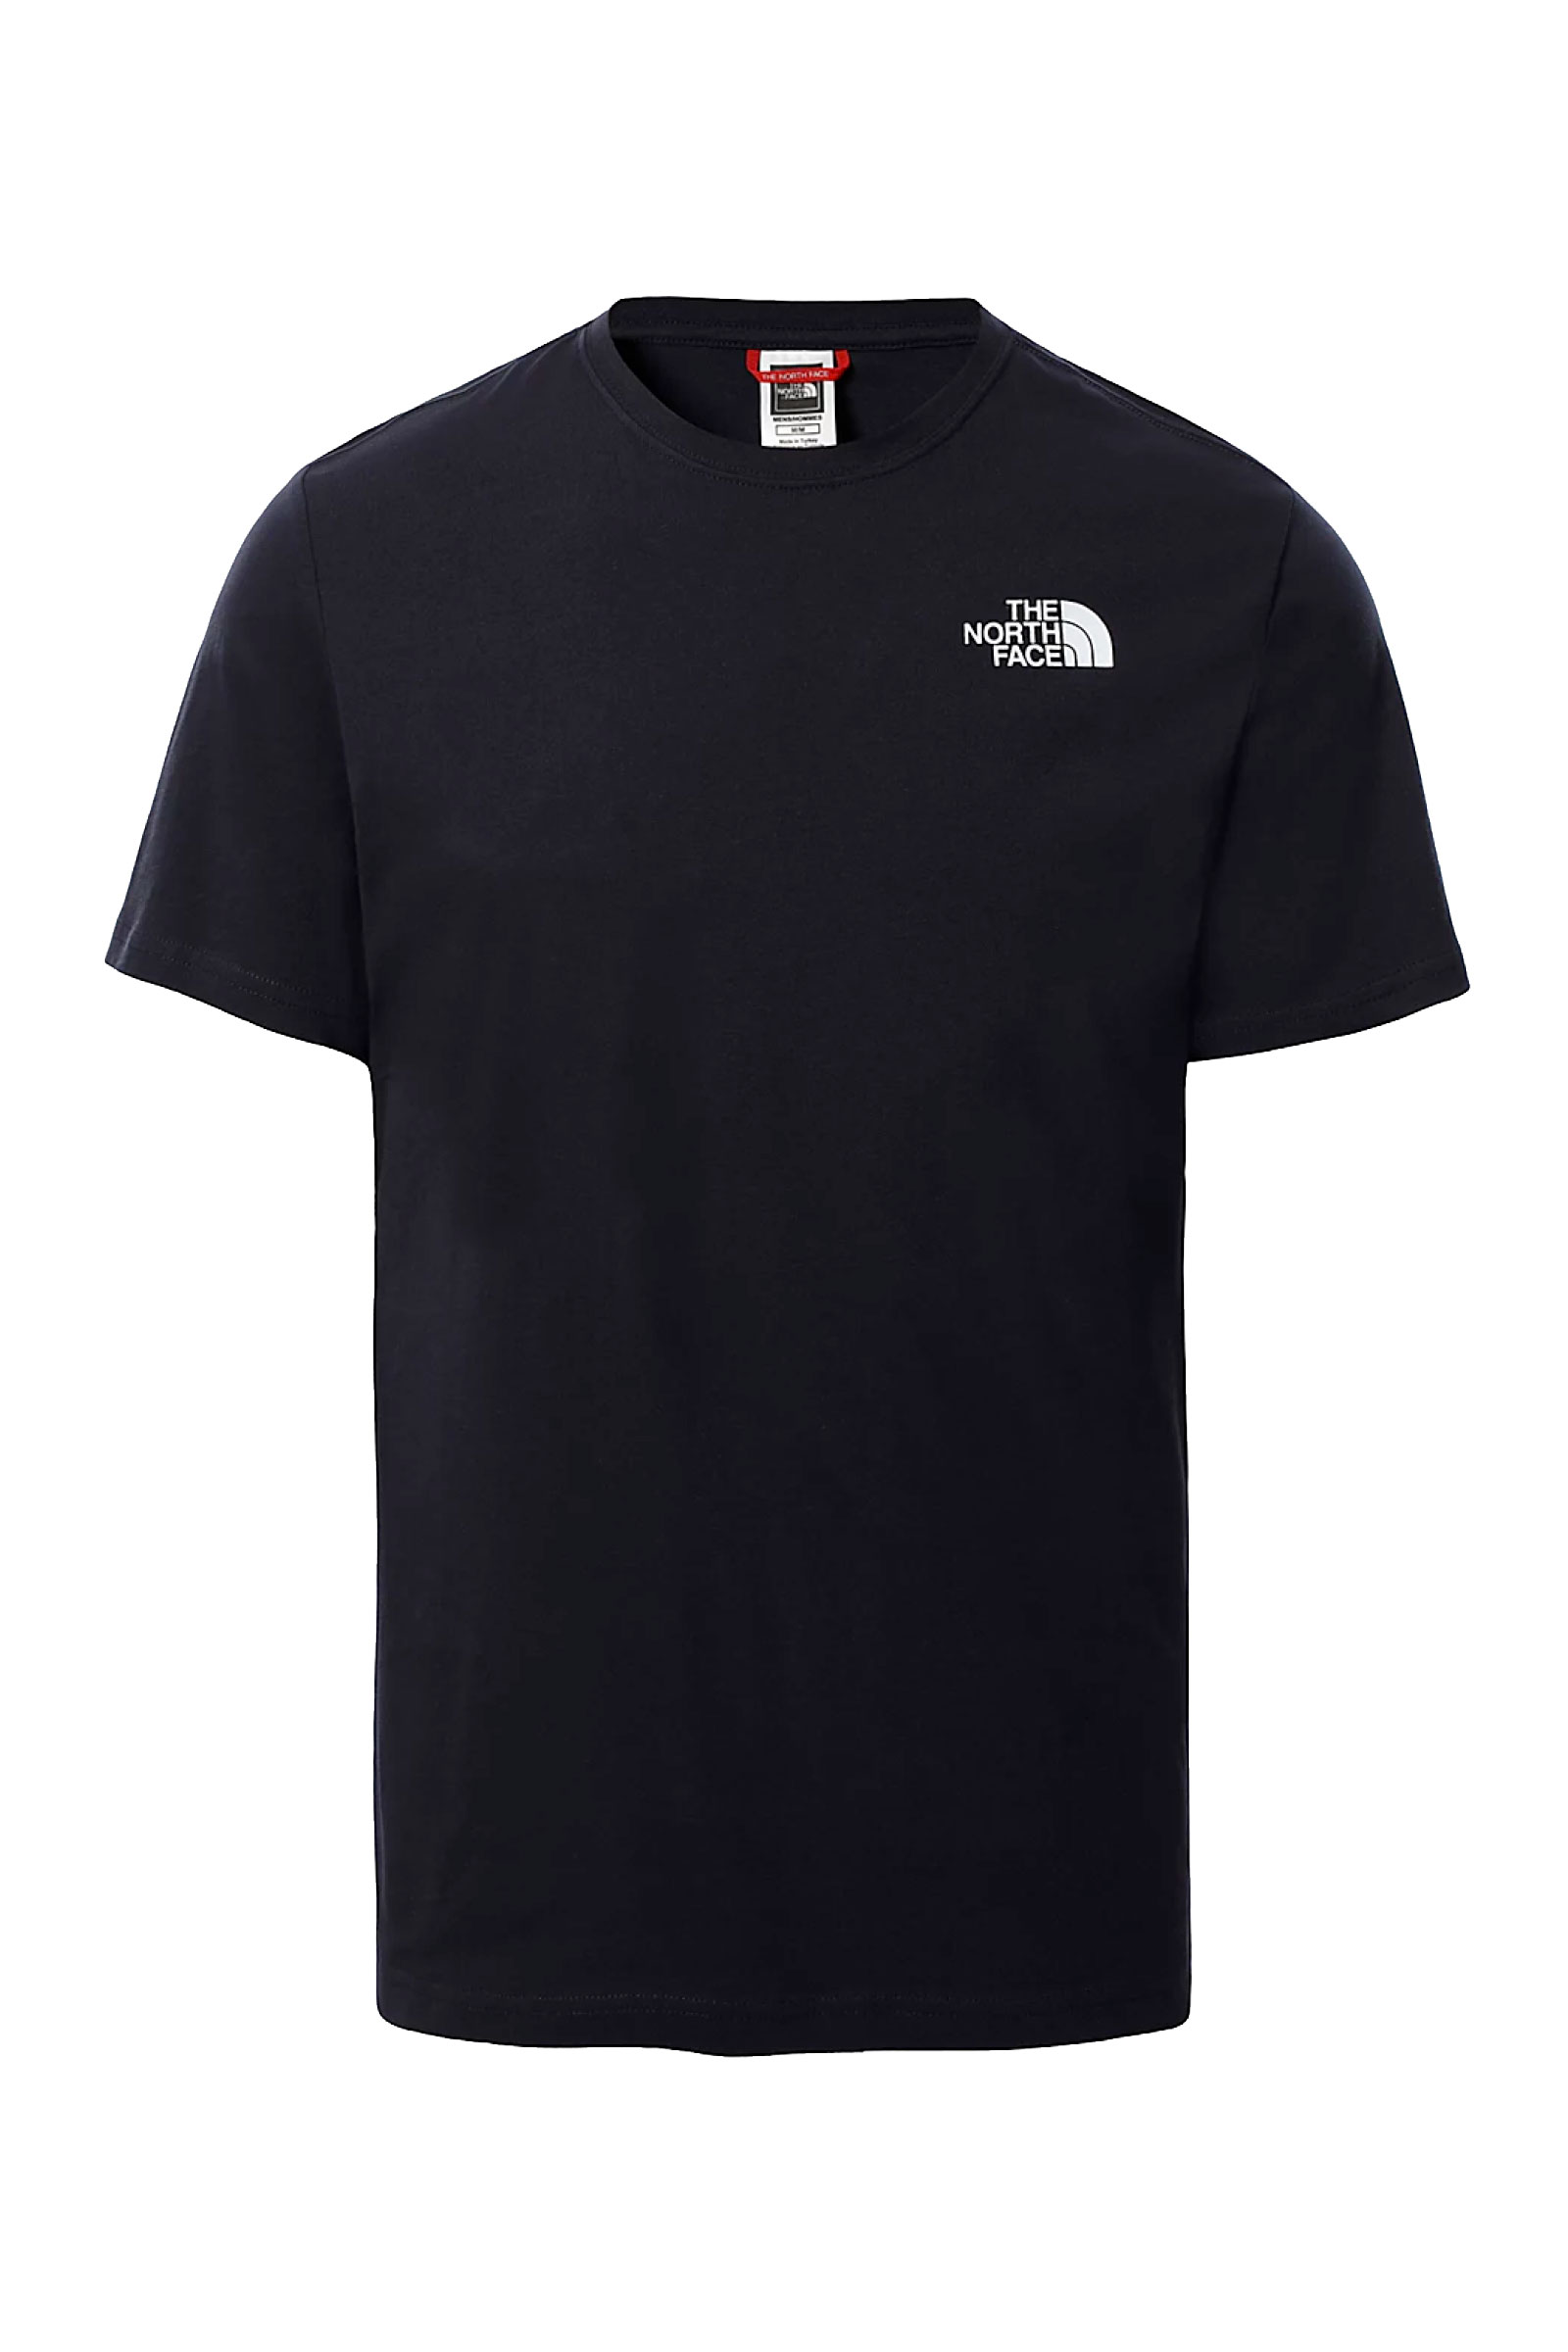 THE NORTH FACE | T-Shirt | NF0A2TX20GZ1